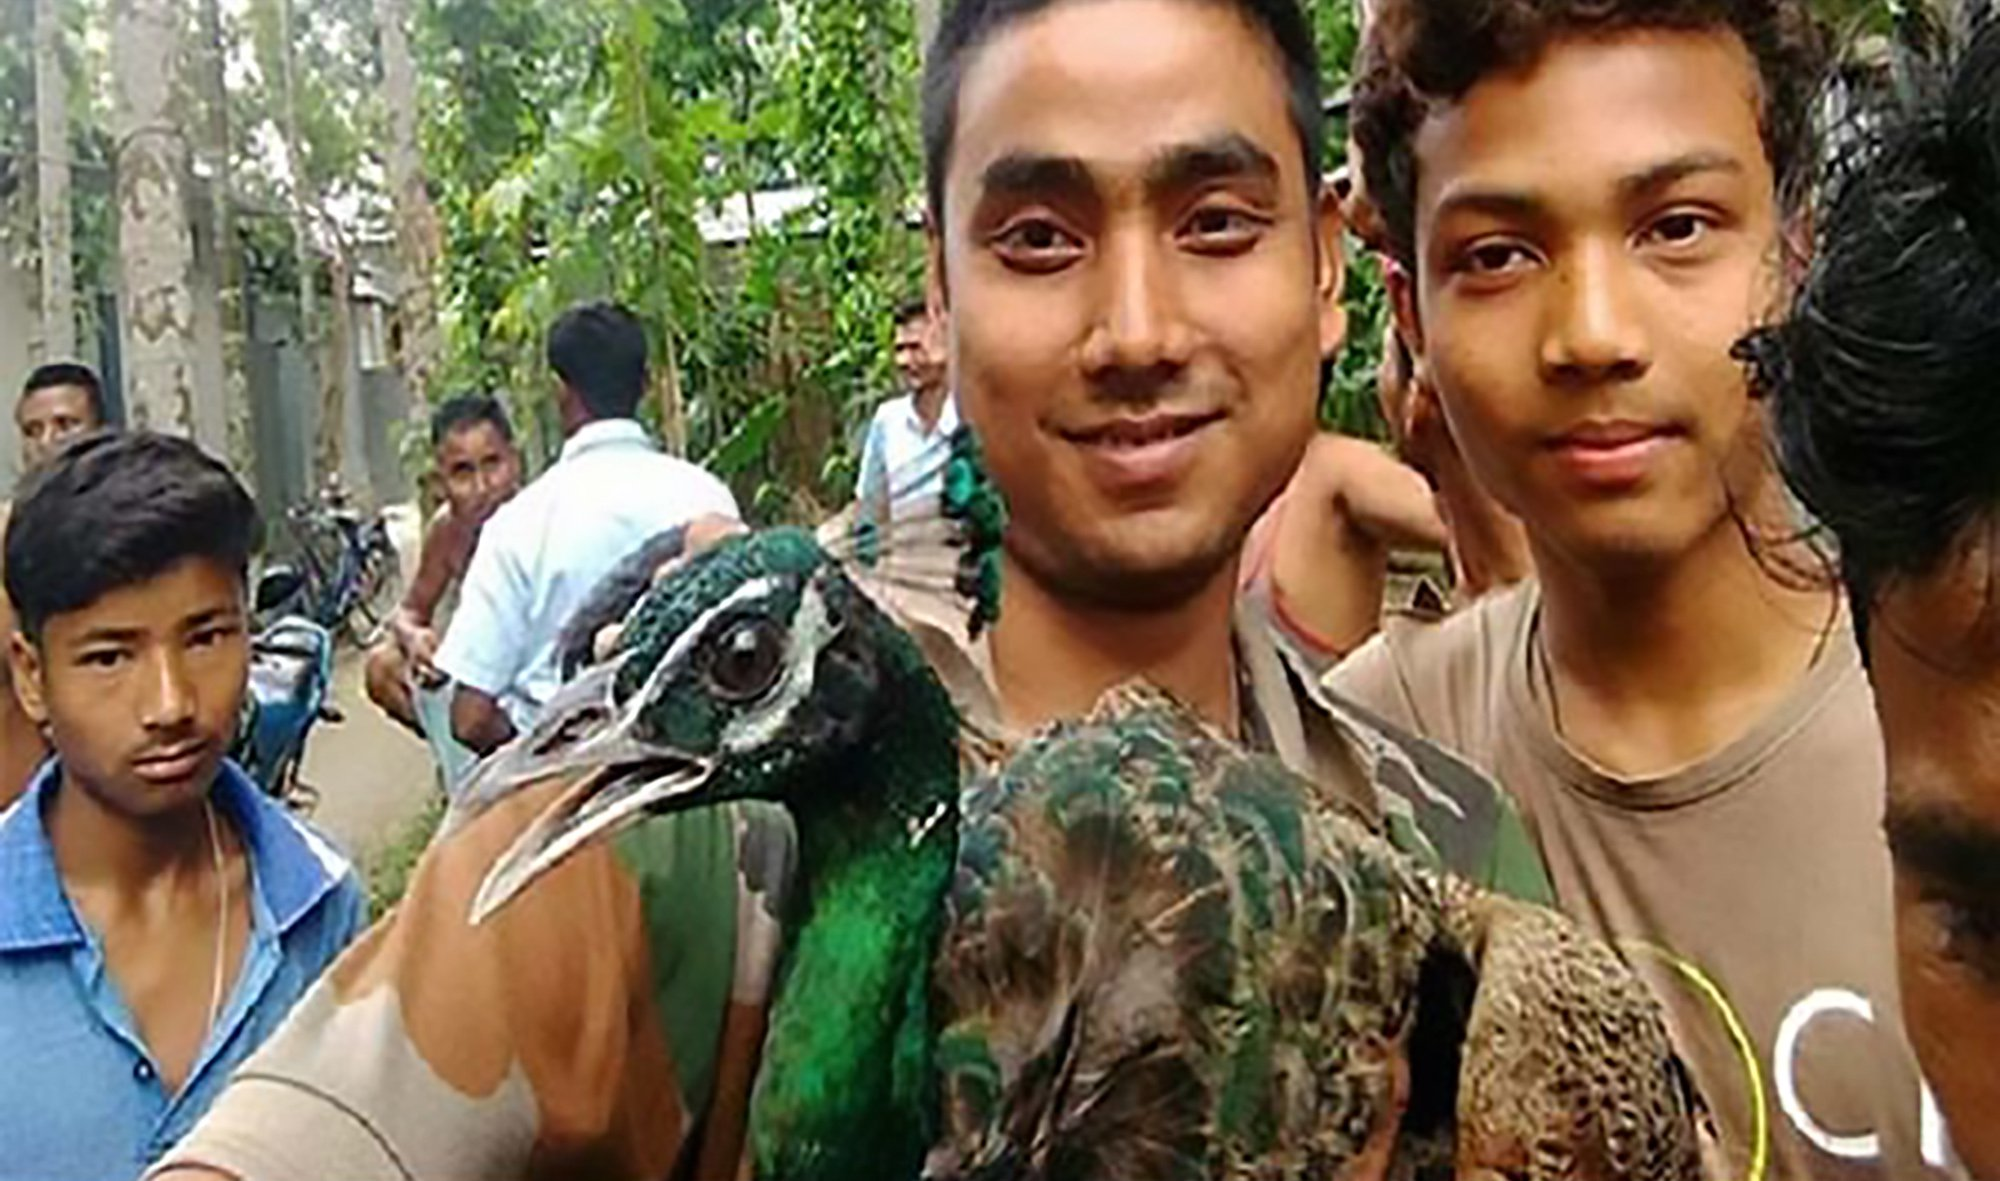 """Pics shows: The villagers pulled the peacock by the feathers for selfies; A peacock has died after locals manhandled it so that they could take selfies with the striking bird. The incident occurred in the city of Jalpaiguri in the north-eastern Indian state of West Bengal. The peacock is the national bird of India. Jalpaiguri wildlife warden Seema Chowdhury told local media: """"We are investigating to find out what happened. What the villagers did was obviously not right. We are also trying to find out how the bird fell ill."""" Chowdhury has confirmed that police and forest department officials have launched a probe into the peafowl???s death. According to reports, the bird innocently strutted into a busy area of town and triggered a frenzy among selfie-hunting locals. Residents allegedly spread its plumage apart and pulled its legs in an attempt to get it to fan its feathers. A police statement said that the peafowl died on the way to the police station and the bird???s body was handed over to Binnaguri wildlife workers. When probed about the incident, State Forest Minister Binay Krishna Barman told media that he was not aware of the case. The bird???s death is the latest in a worrying trend of people getting too close to wildlife for the sake of a selfie, often proving disastrous for both animals and humans. A man in Odisha???s Nabarangpur district tried to take a photo with an injured bear in the woods when the large mammal mustered enough strength to kill him on the spot. An elephant attacked and killed a tourist in November 2017 when he tried to pose with it by a roadside in Jalpaiguri."""